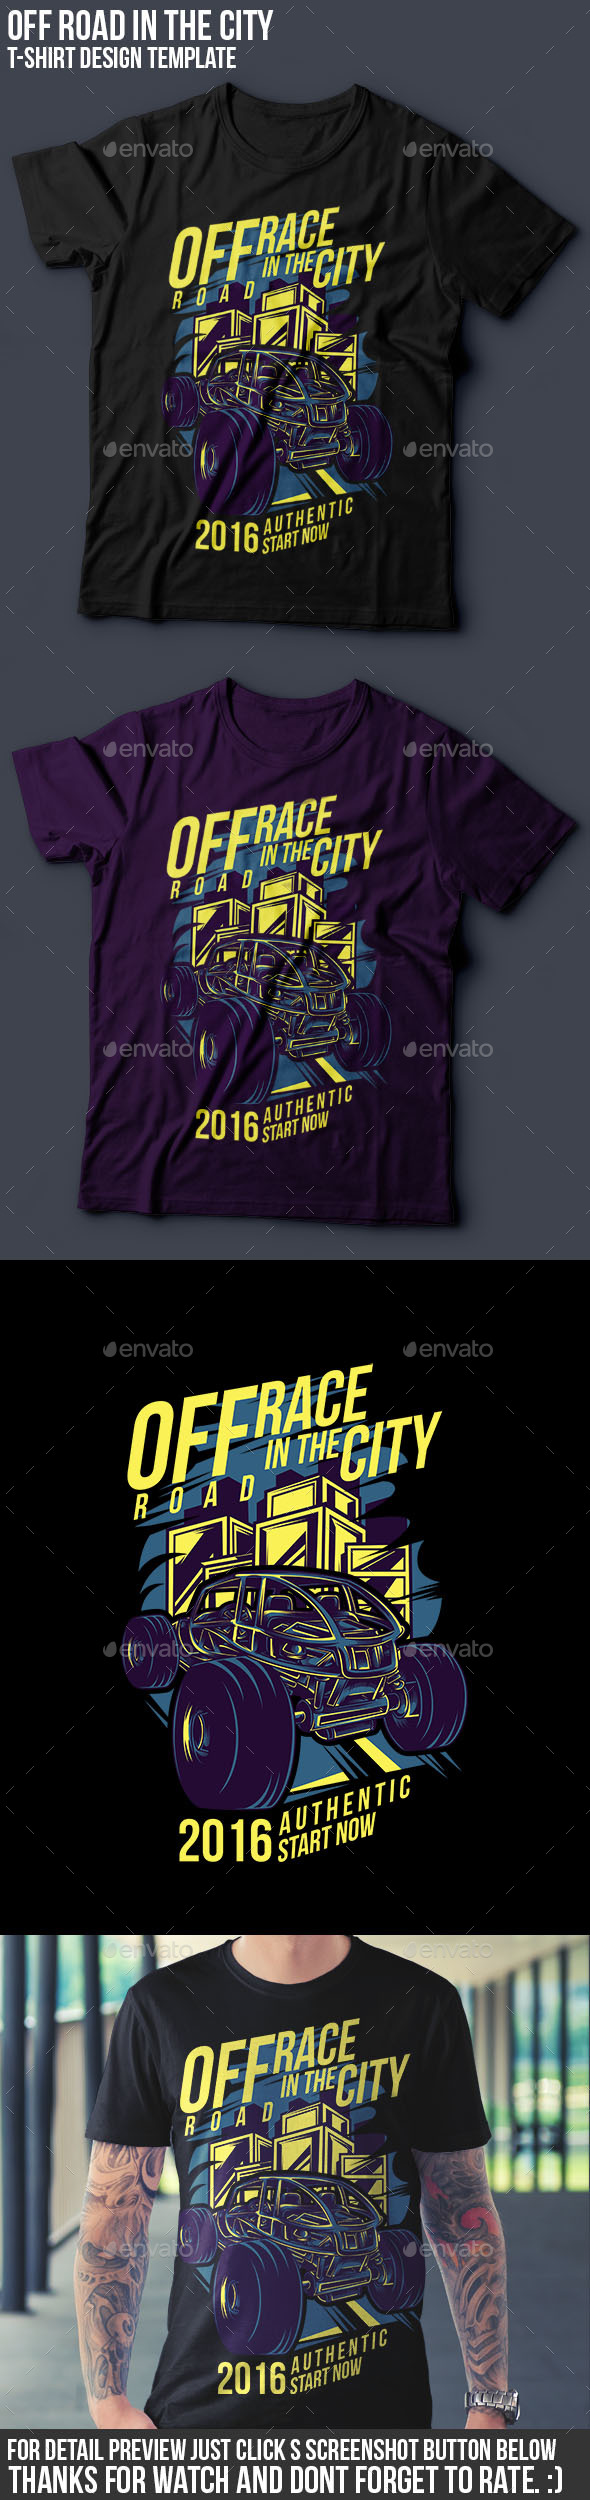 Off Road in the City T-Shirt Design - Events T-Shirts